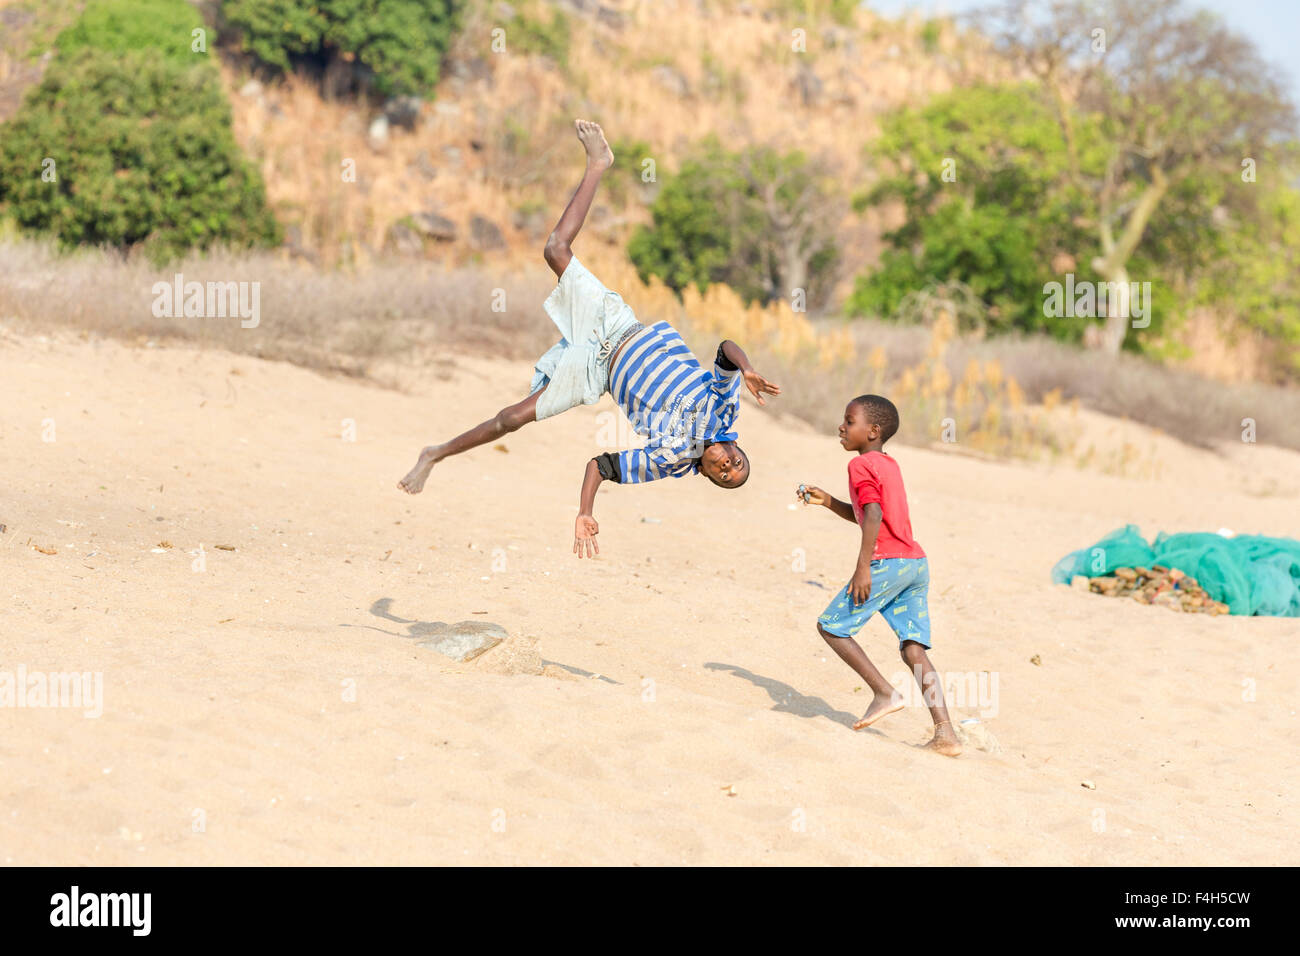 Local children and lifestyle: acrobatic boys playing, jumping, turning somersaults on the beach, Likoma Island, Stock Photo